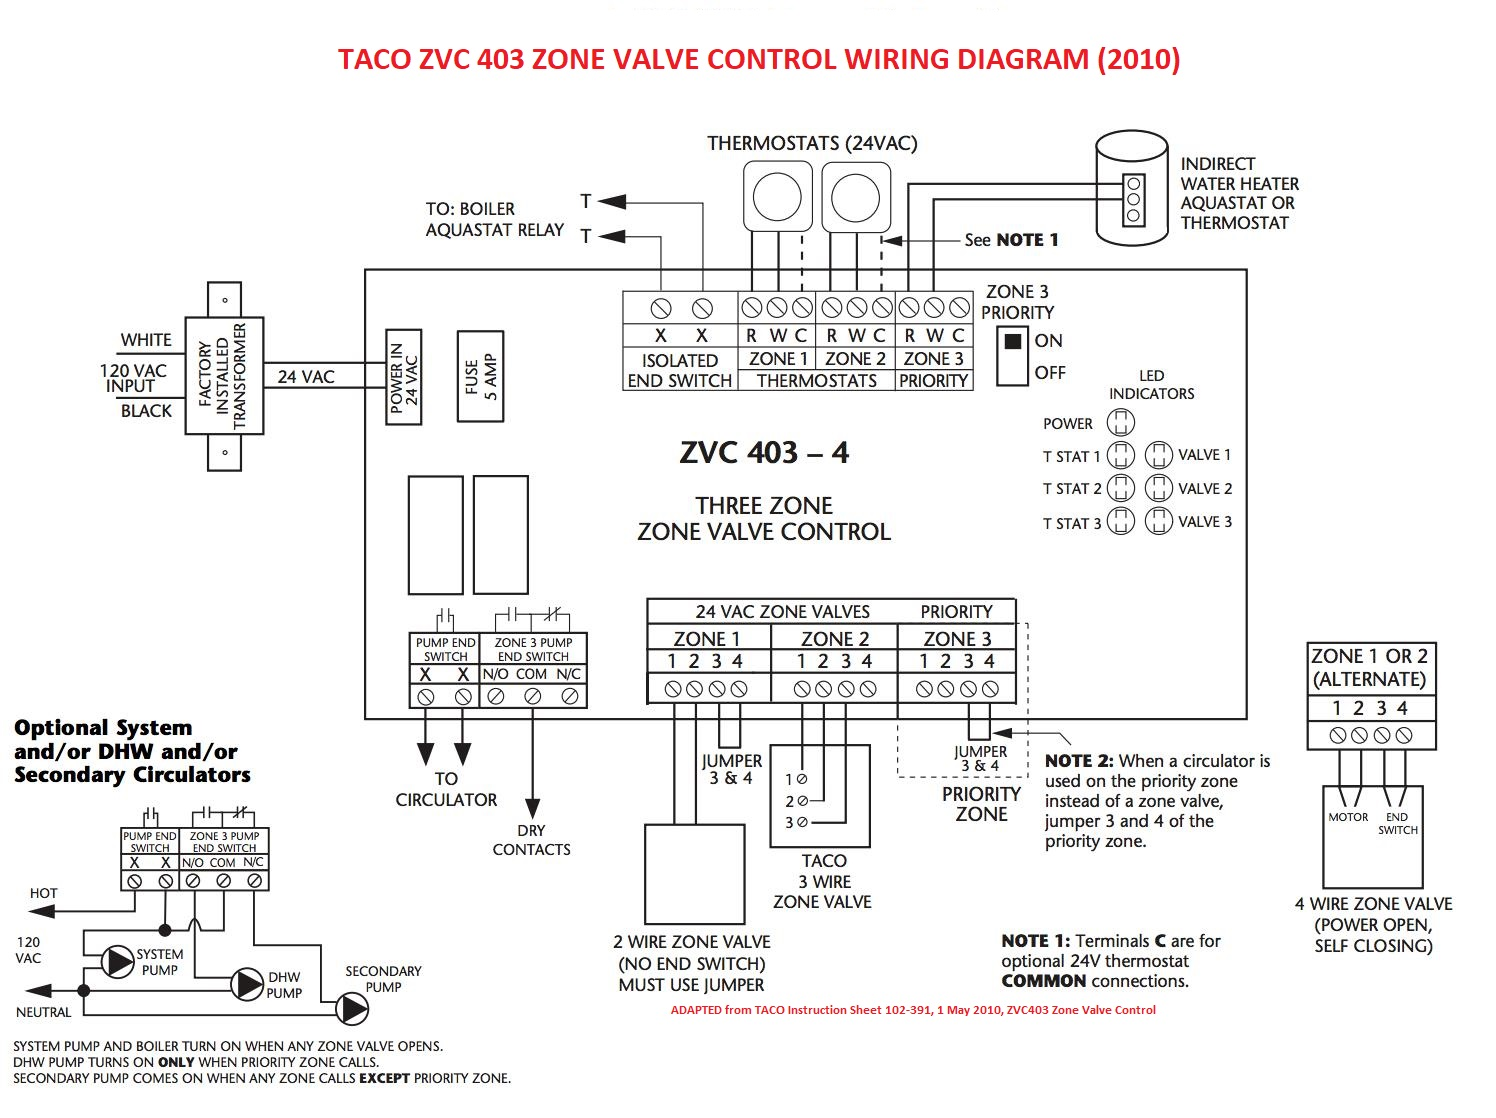 Zone Valve Wiring Installation Instructions Guide to heating